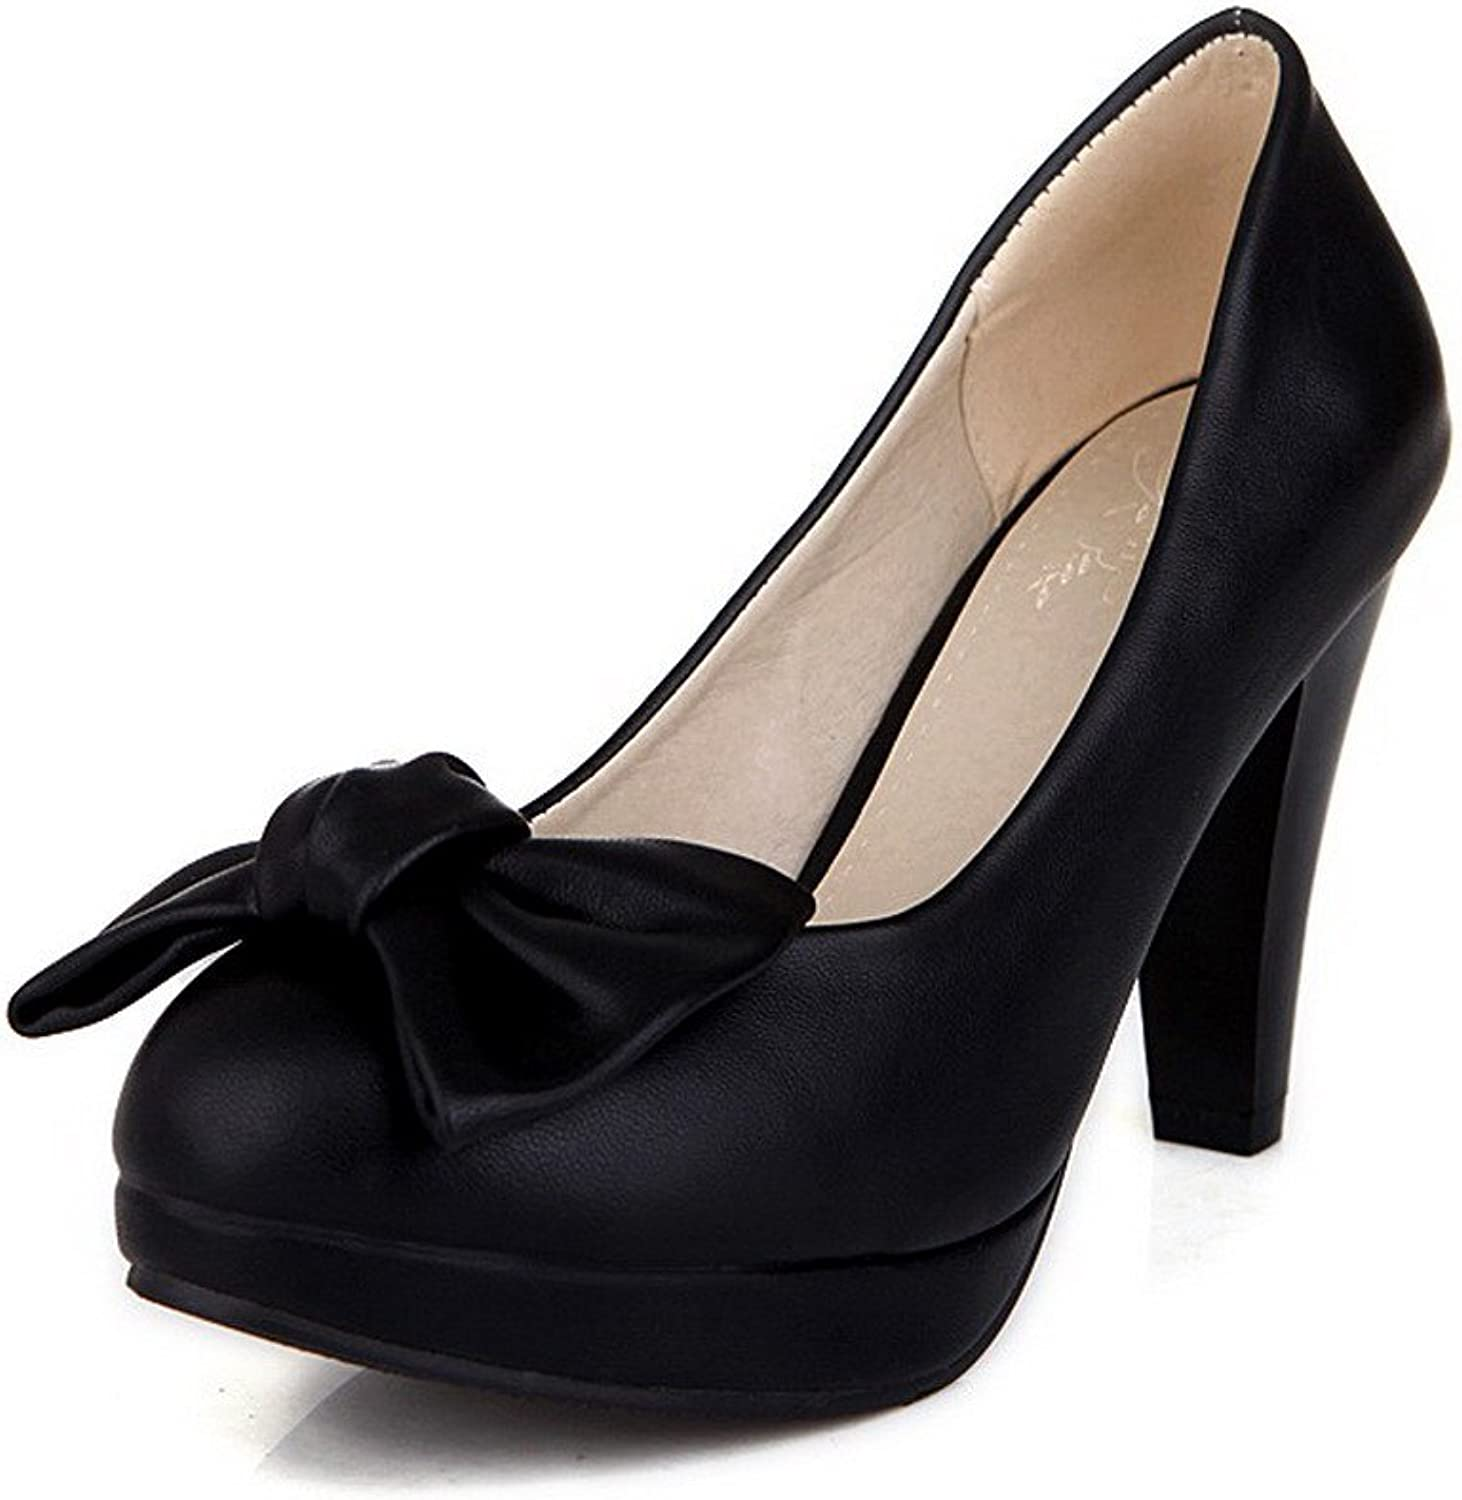 WeiPoot Women's Round Closed Toe Pull-on PU Solid High-Heels Pumps-shoes with Bows